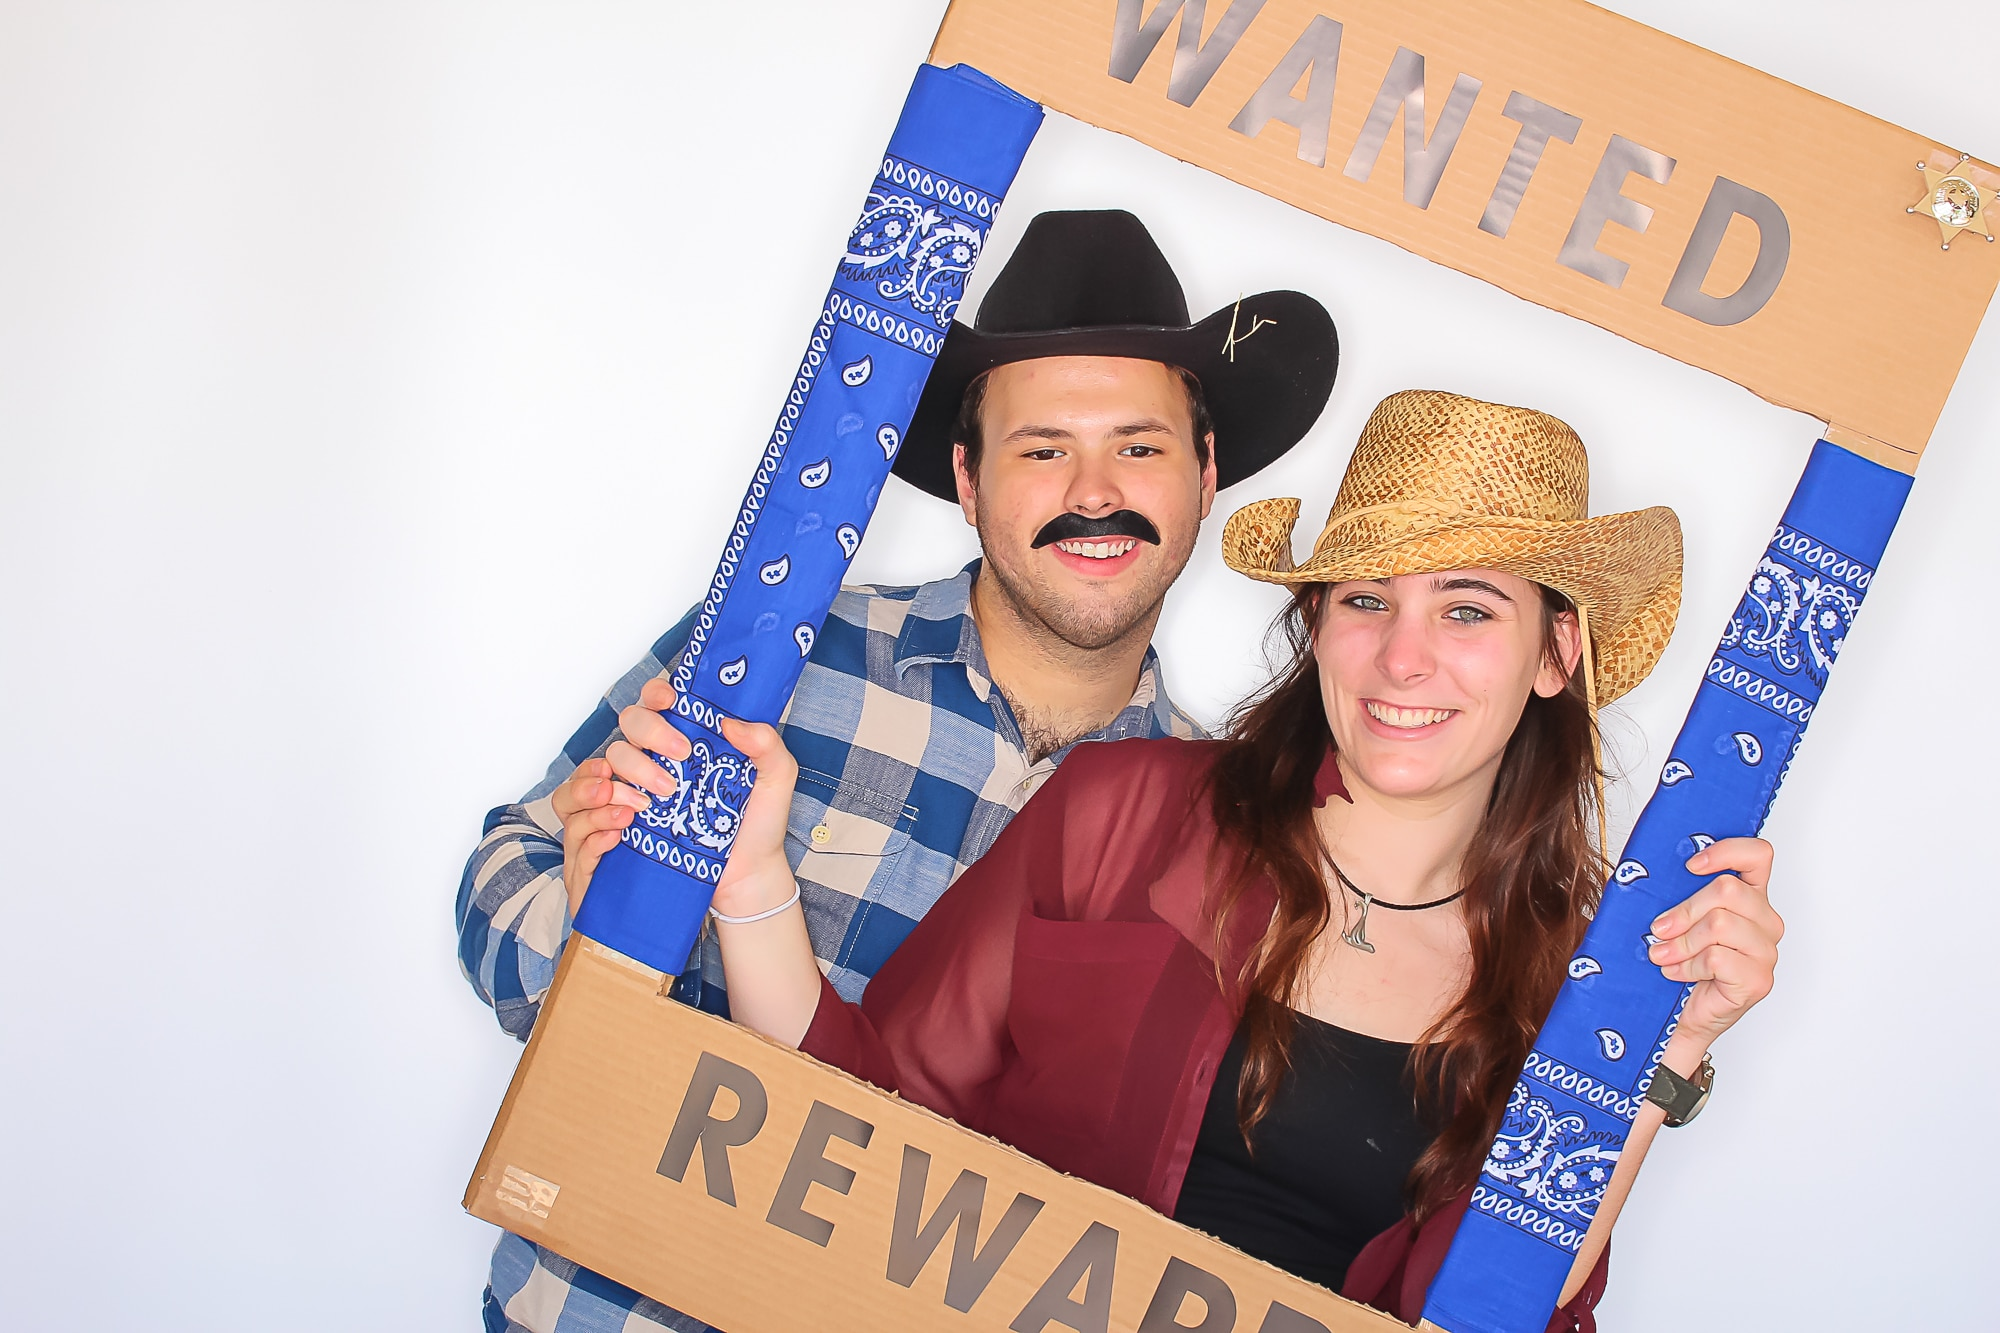 Cowboy and cow girl photo booth photo Instagram Frame